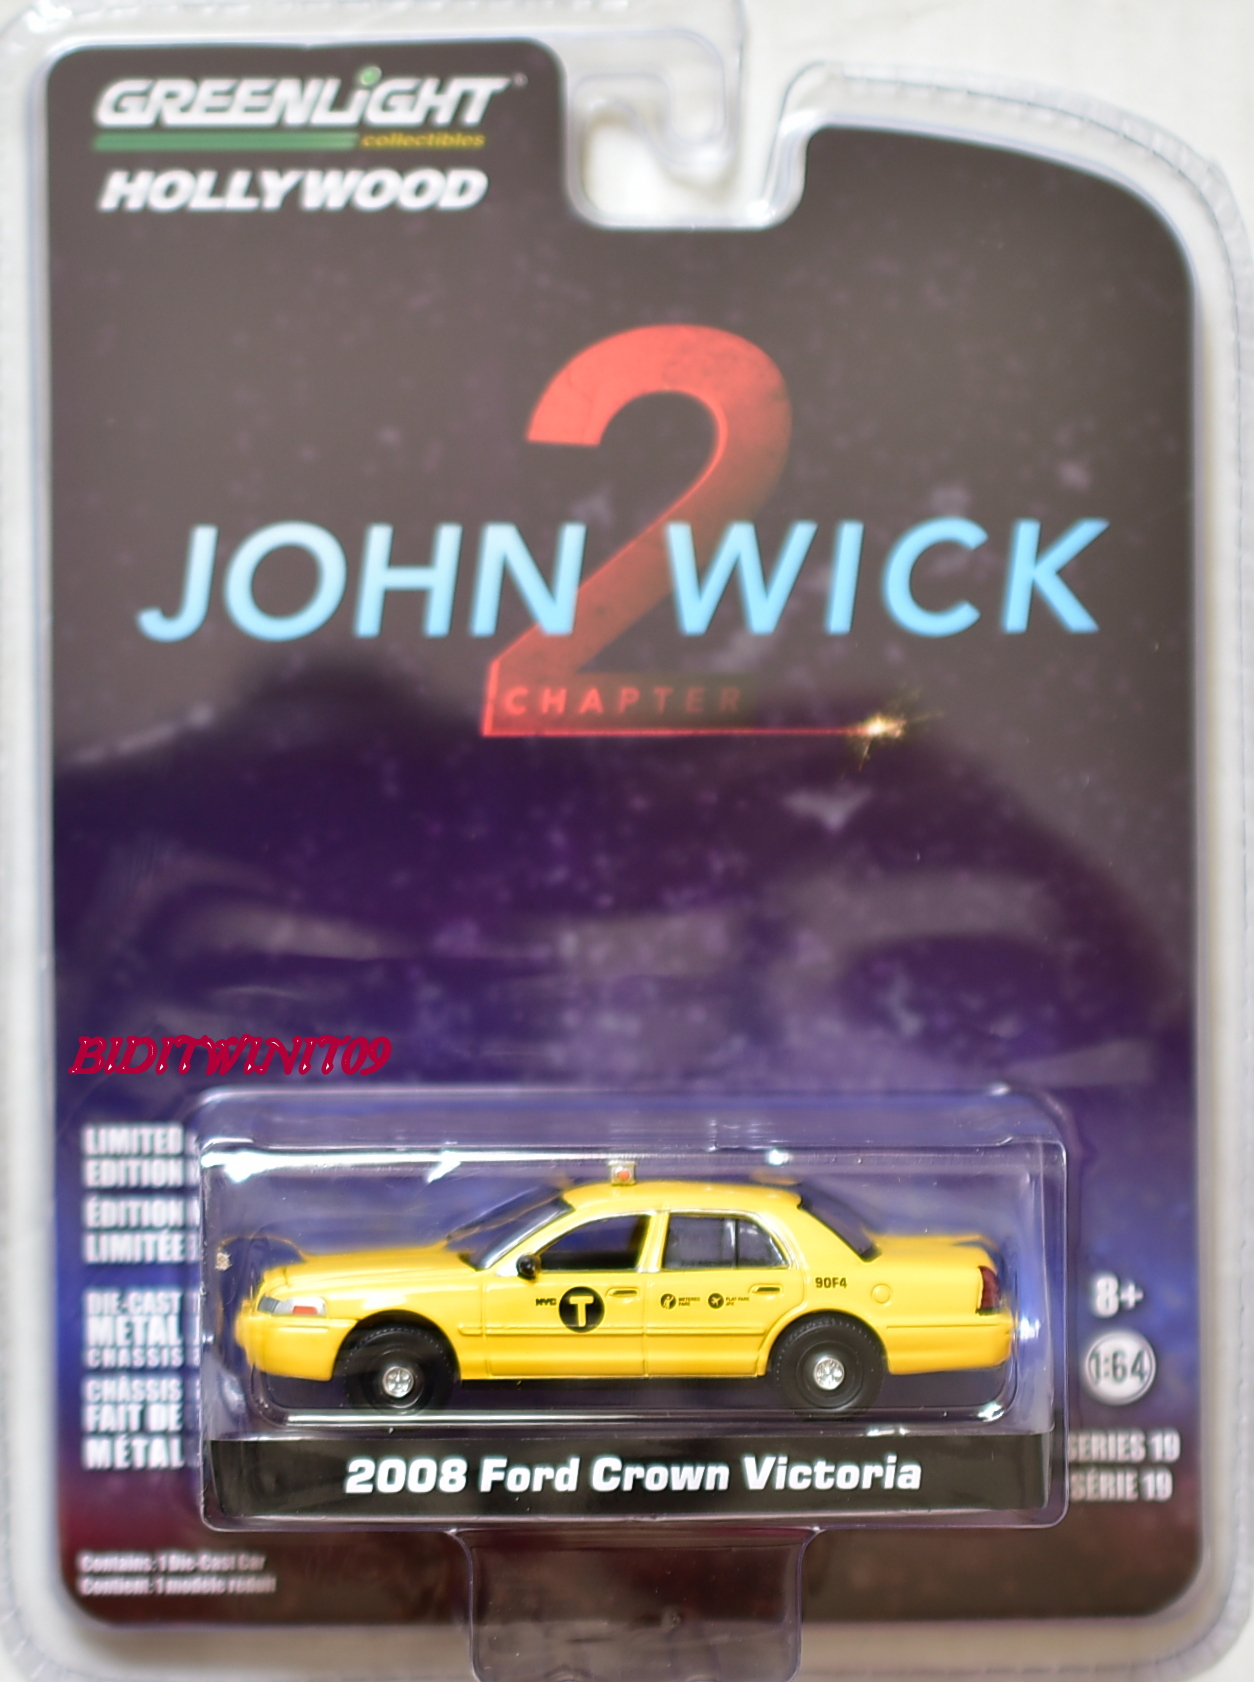 GREENLIGHT HOLLYWOOD JOHN WICK 2 SERIES 19 2008 FORD CROWN VICTORIA 1:64 YELLOW